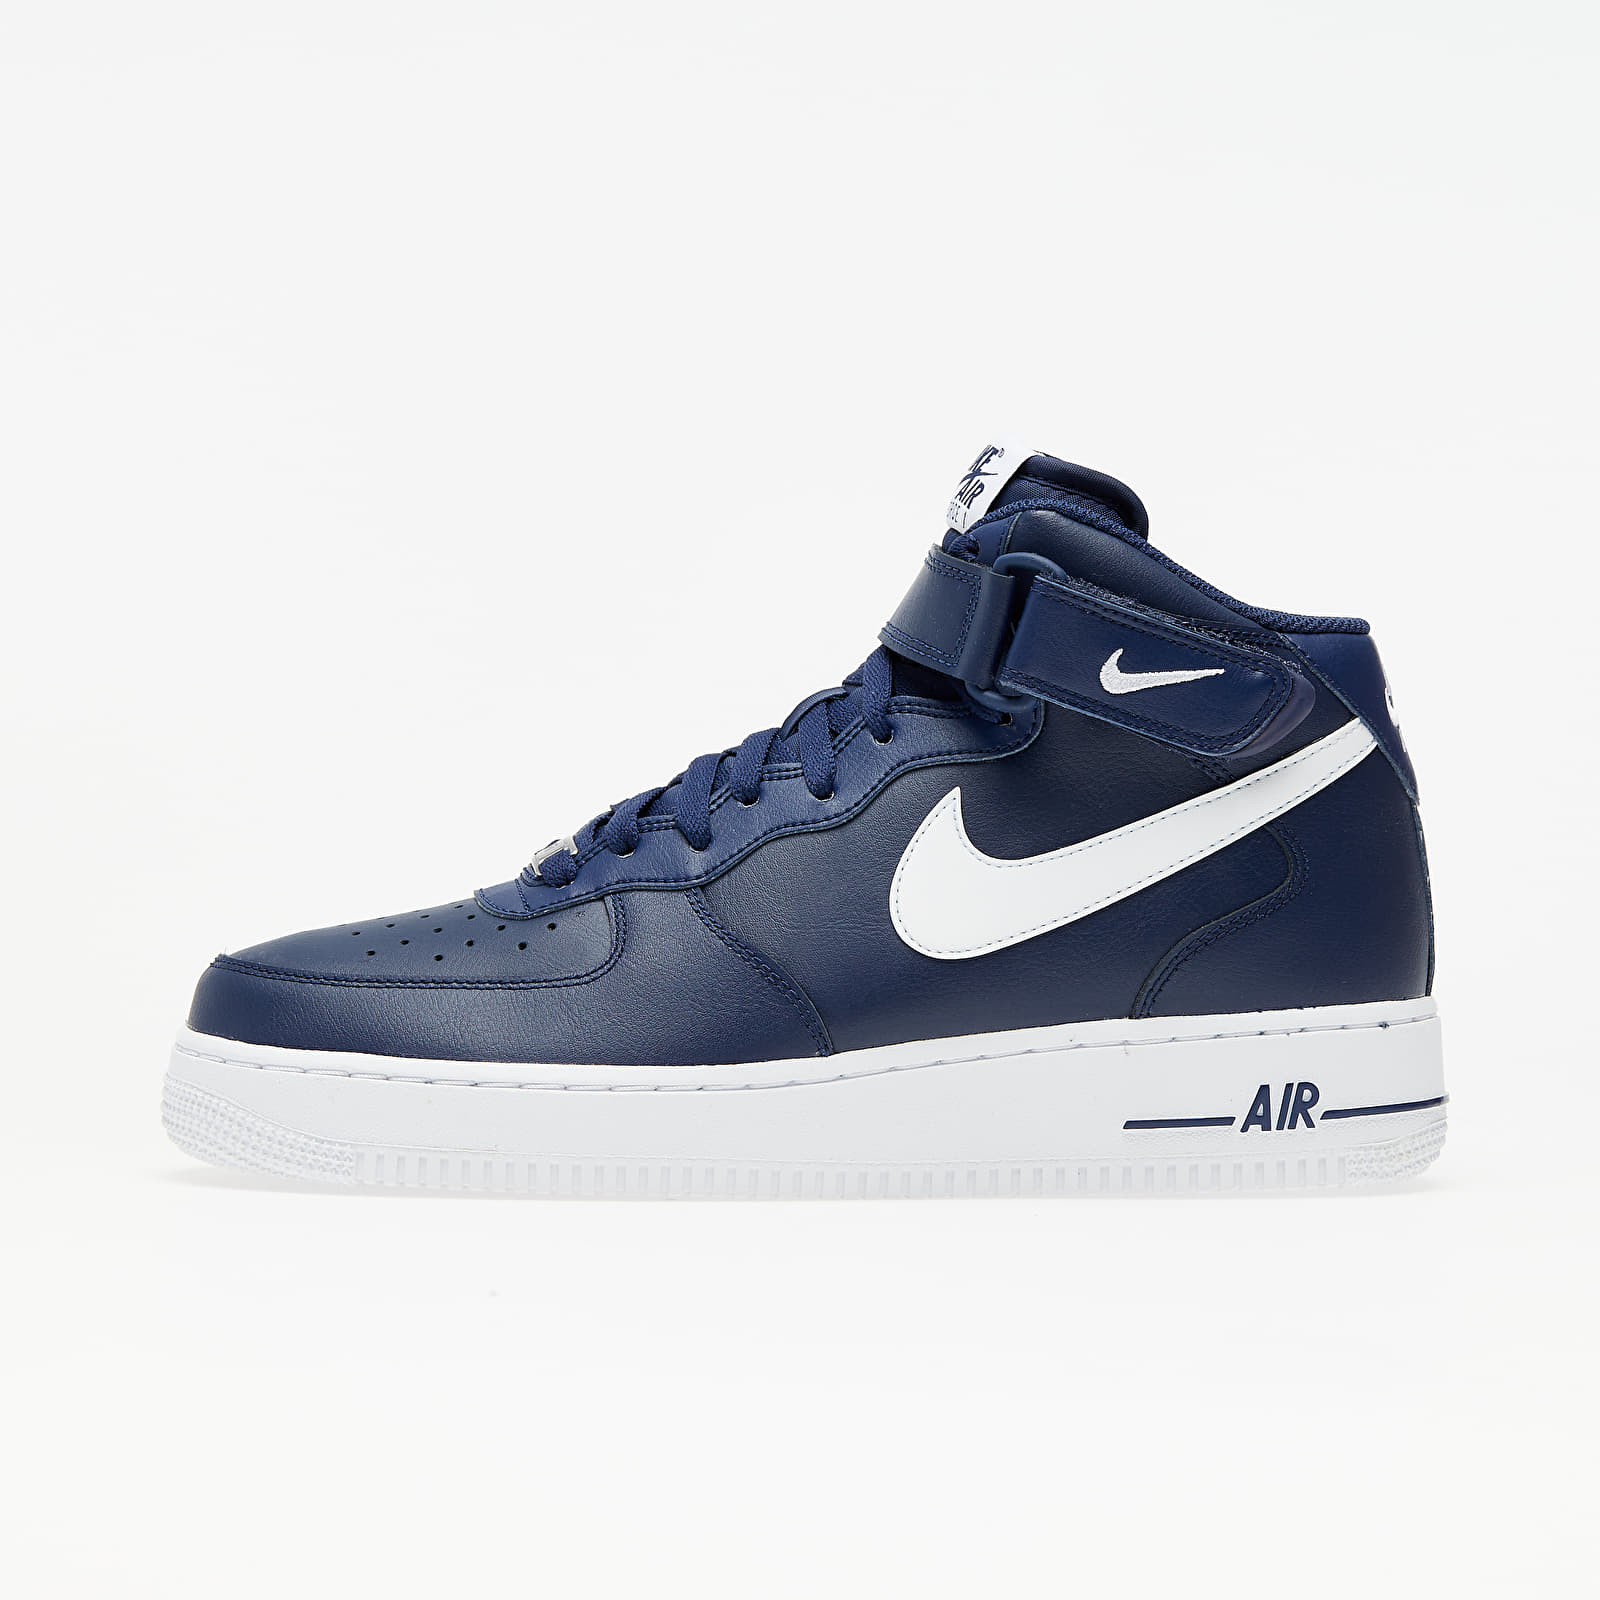 Nike Air Force 1 Mid '07 Midnight Navy/ White EUR 46